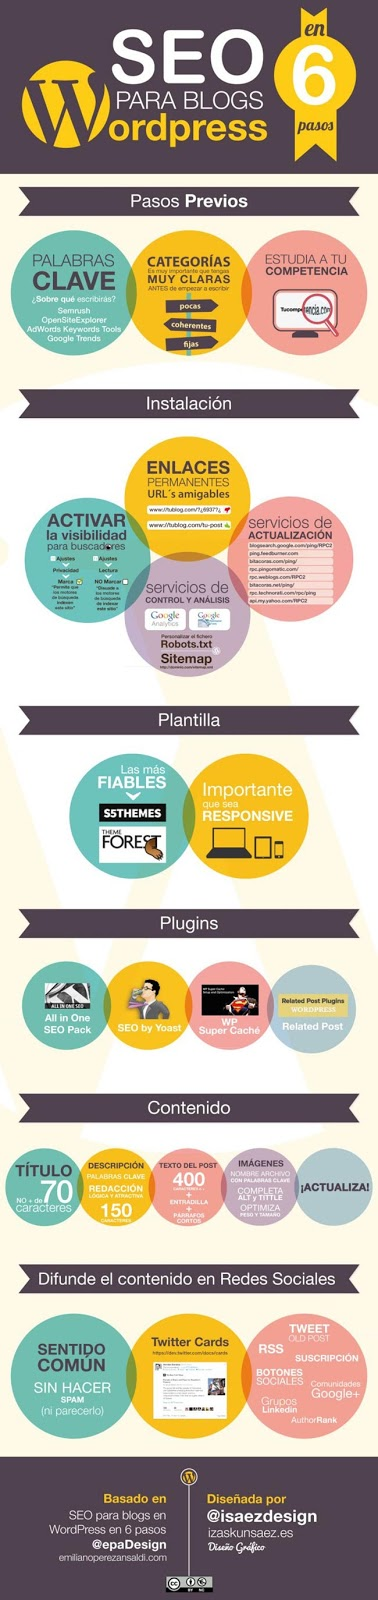 seo-wordpress-infografia